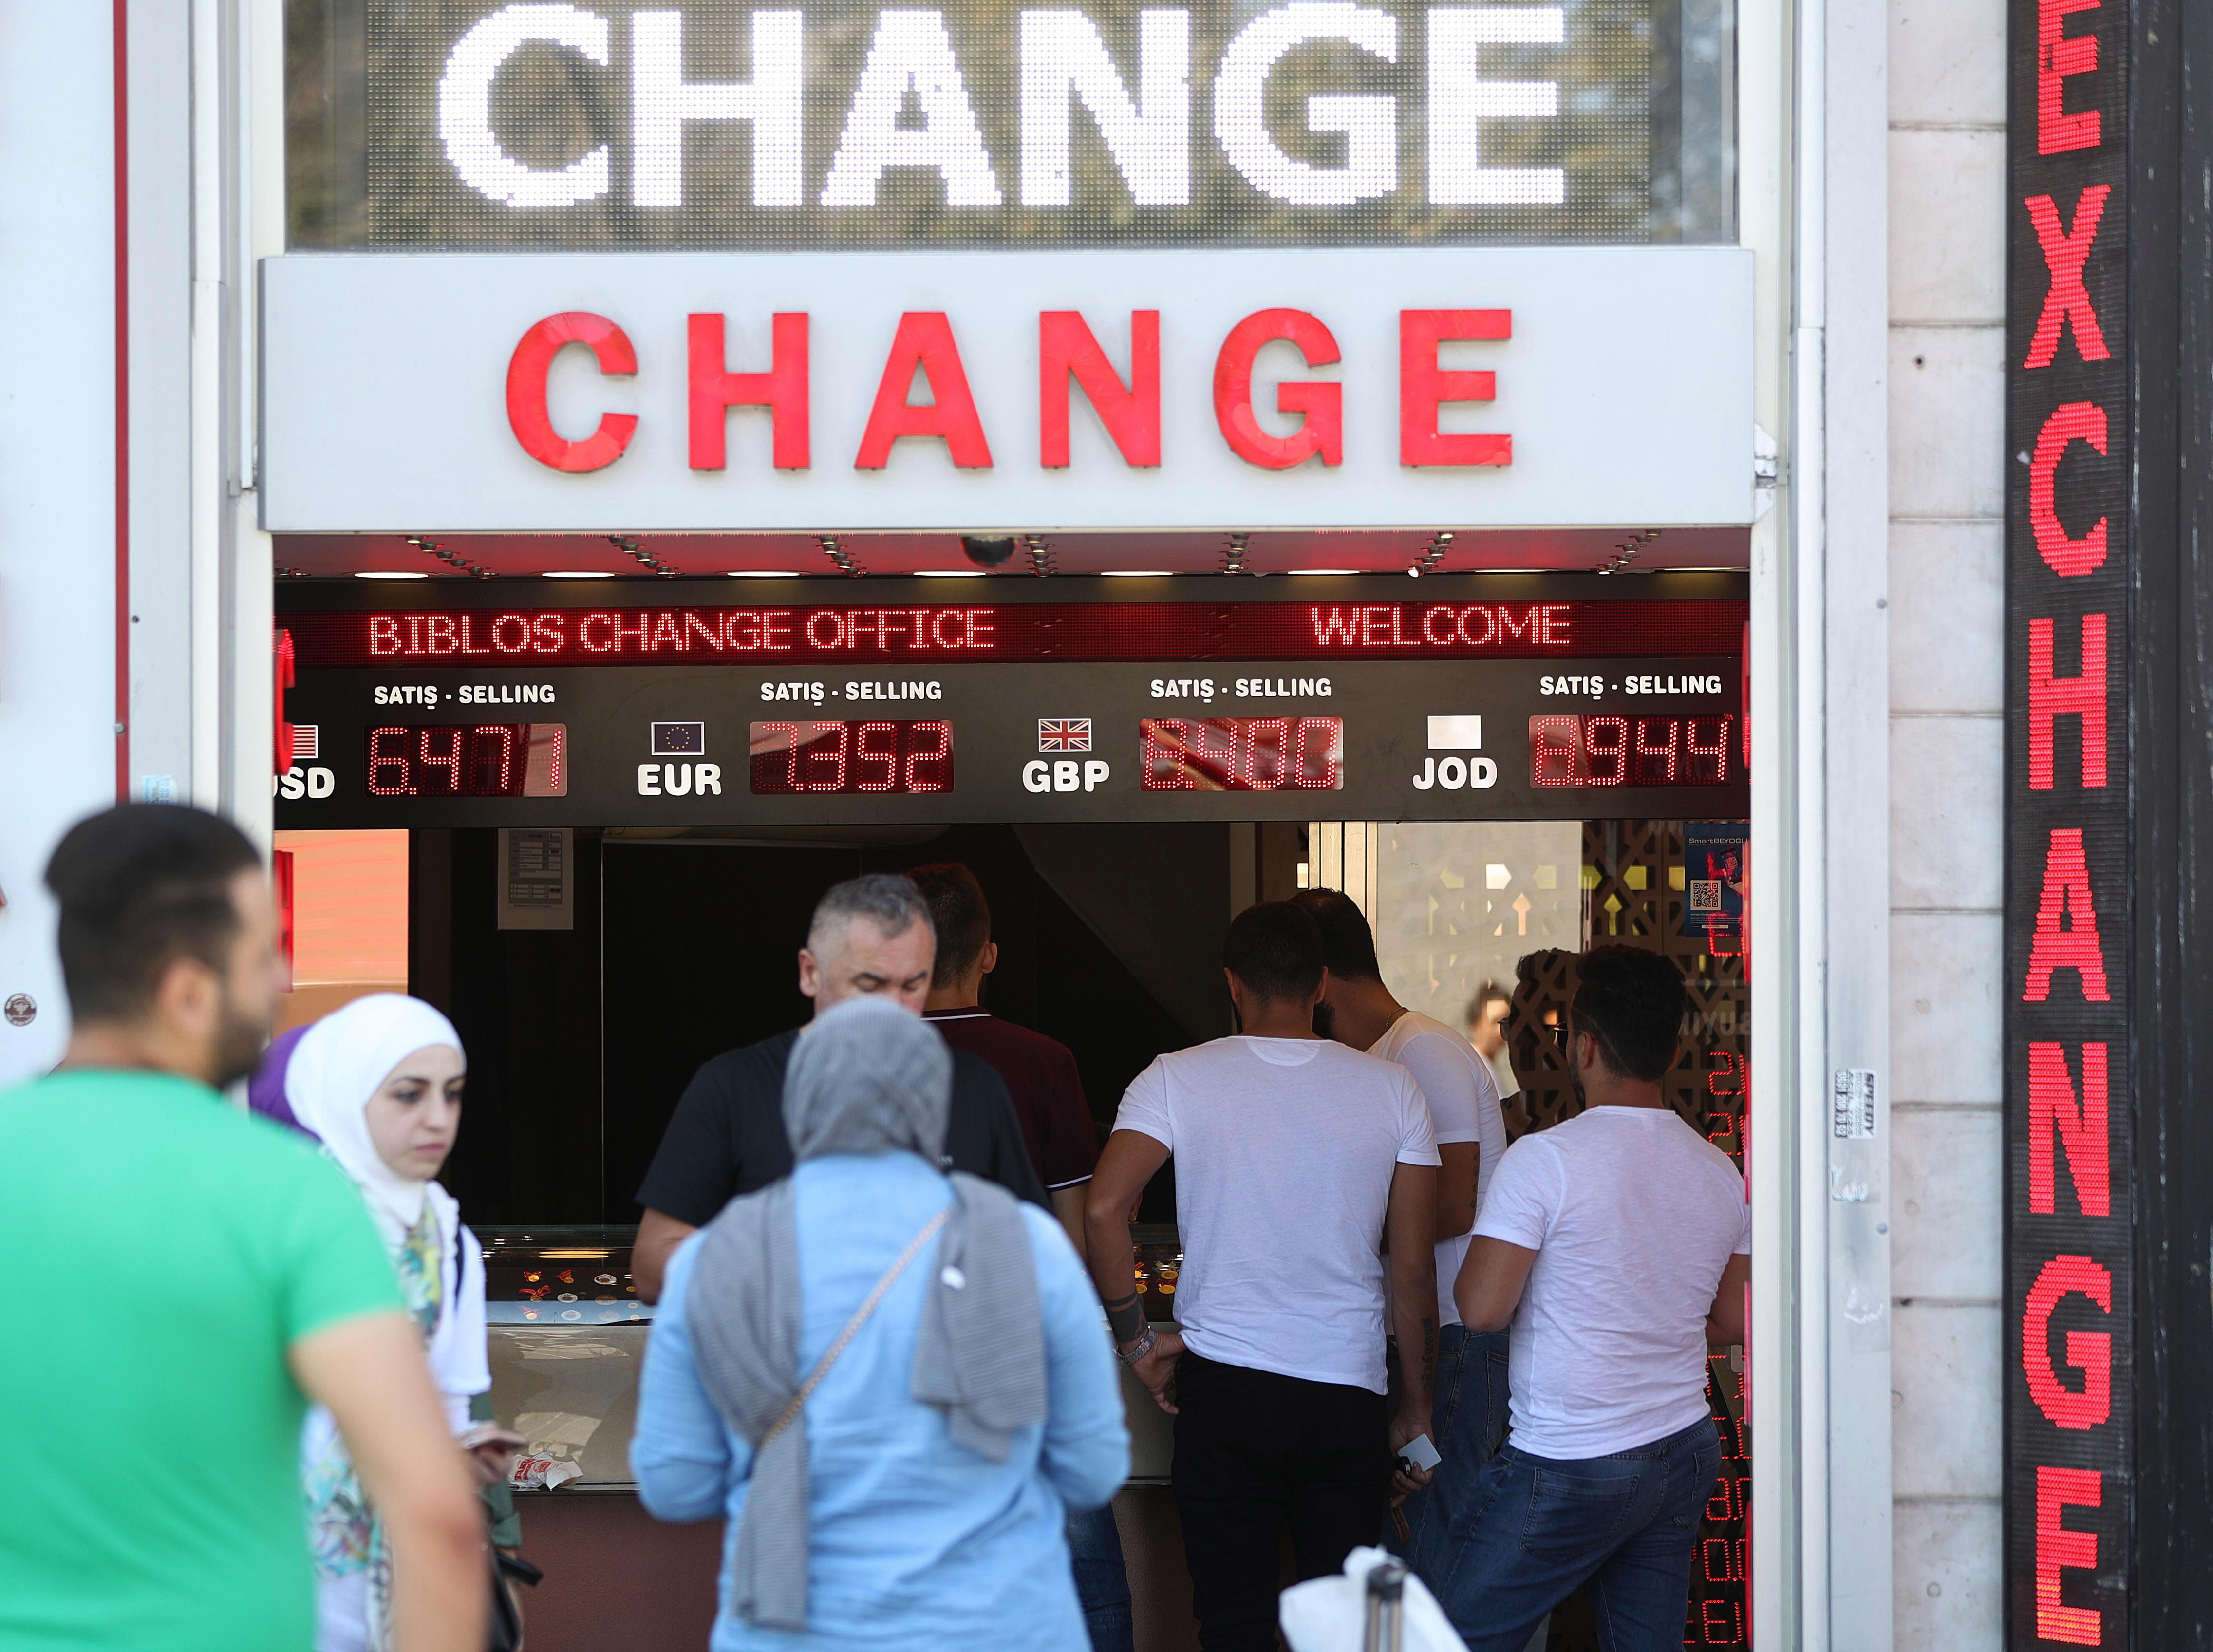 Travel money shops running out of Turkish lira as Brits take advantage of the 'unprecedented' exchange rate